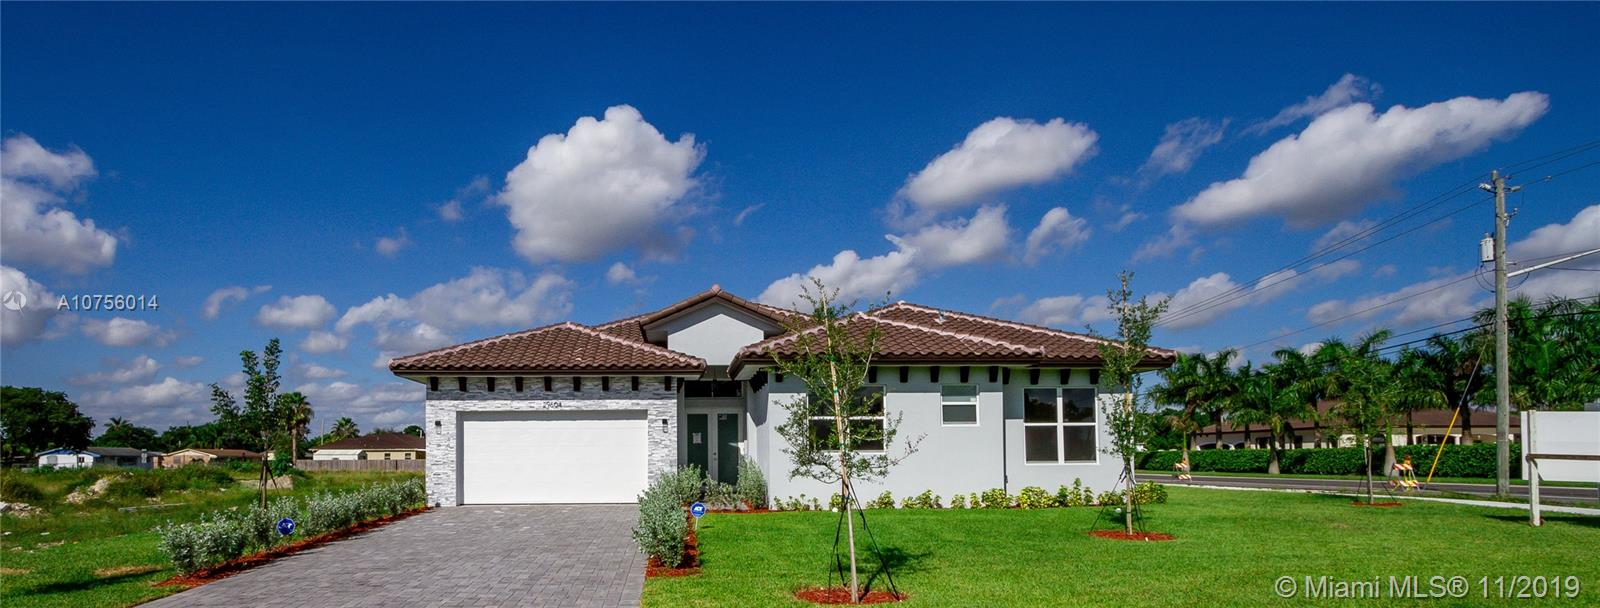 29688 SW 168 ct,Homestead  FL